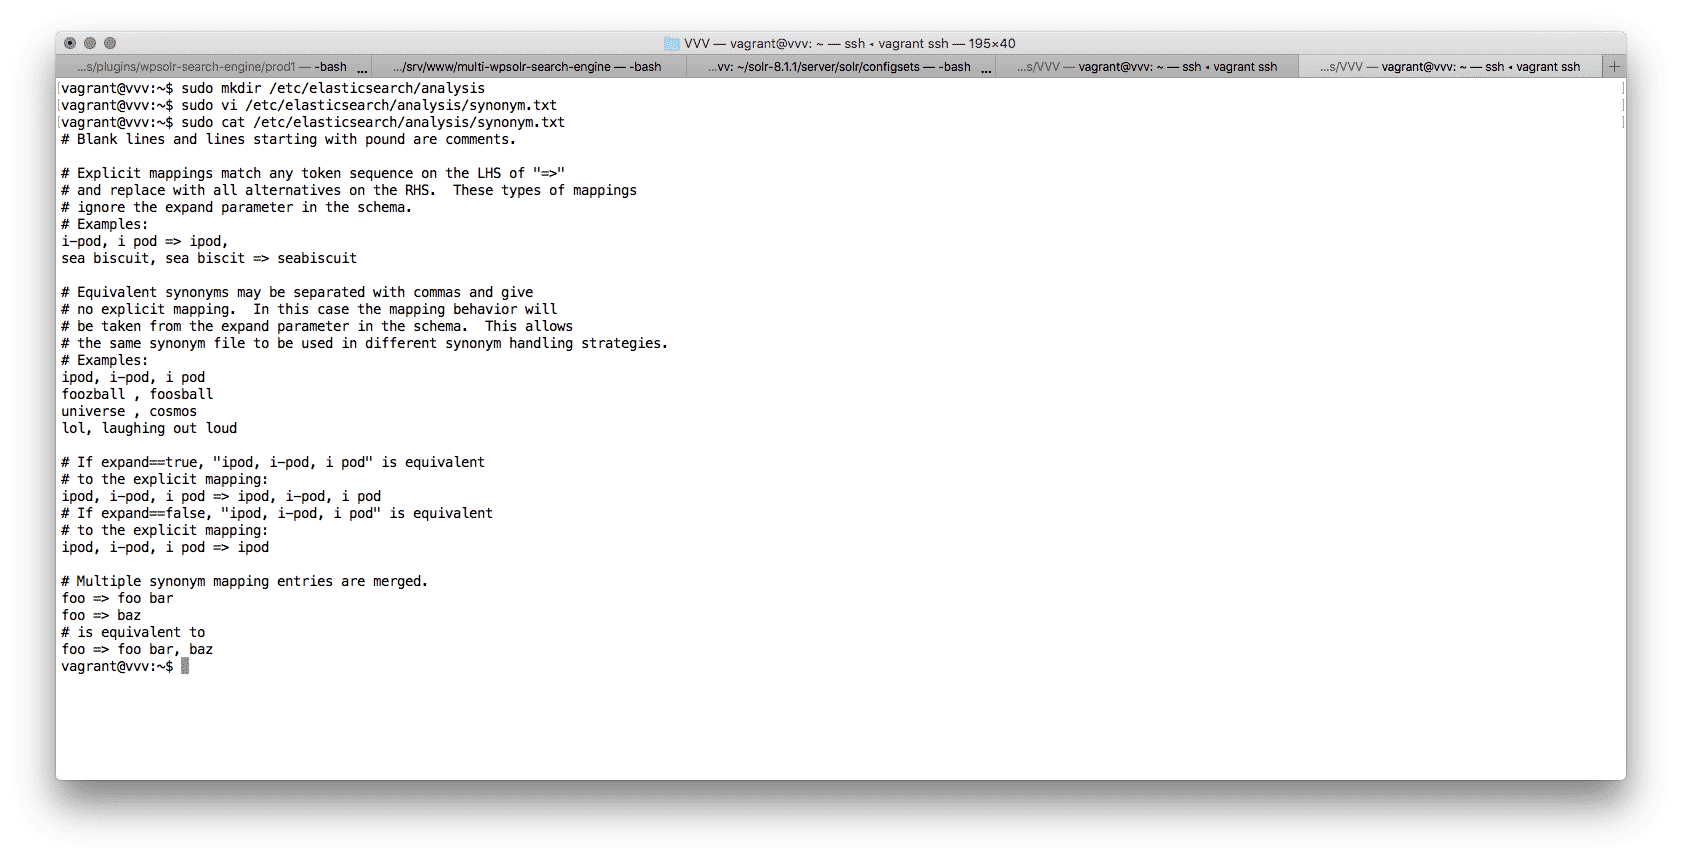 Image word-image-2.png of Manage Elasticsearch and Solr analyser configuration files